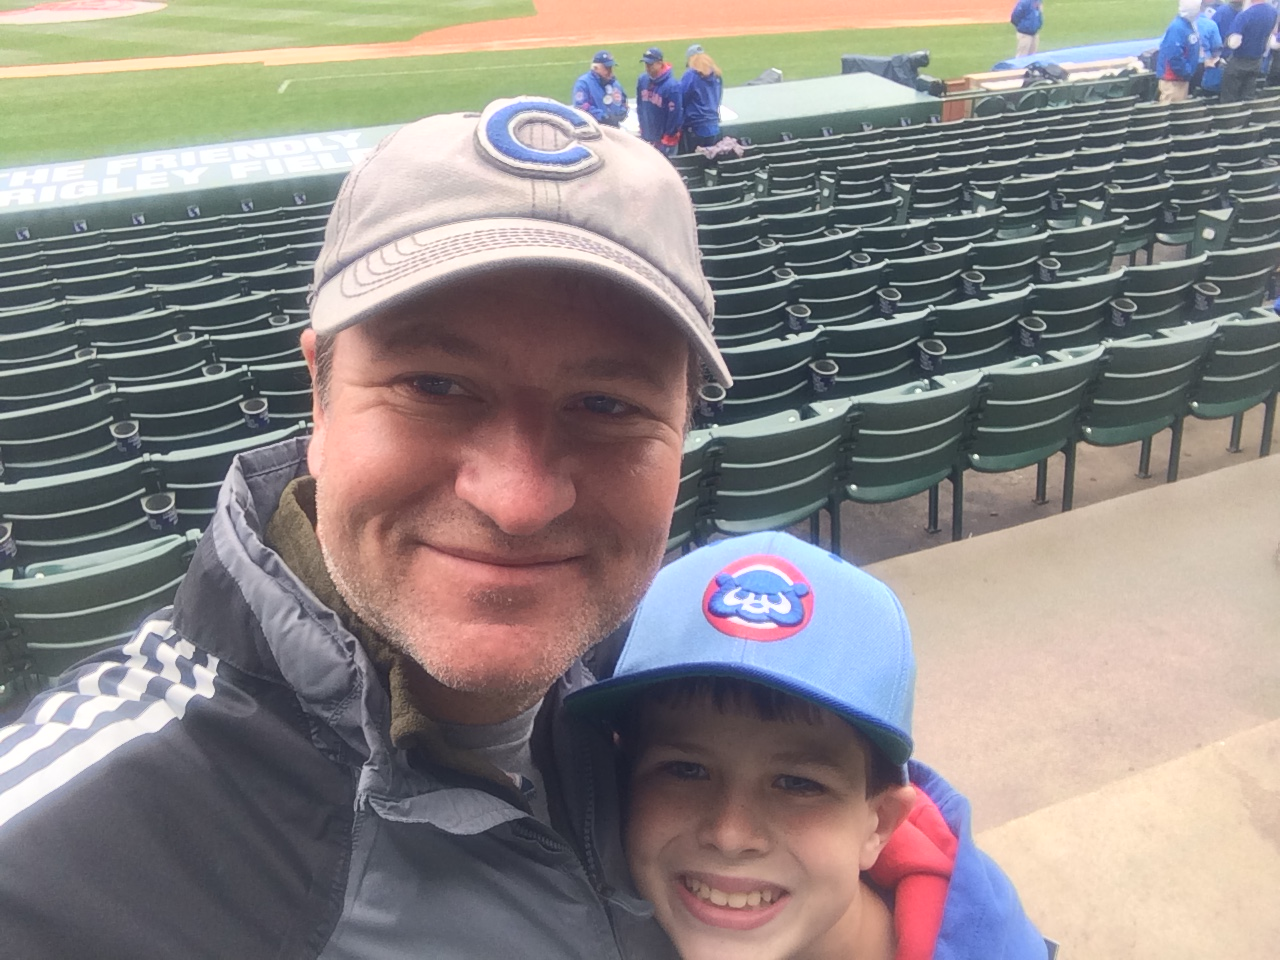 Rick and Sean at Wrigley